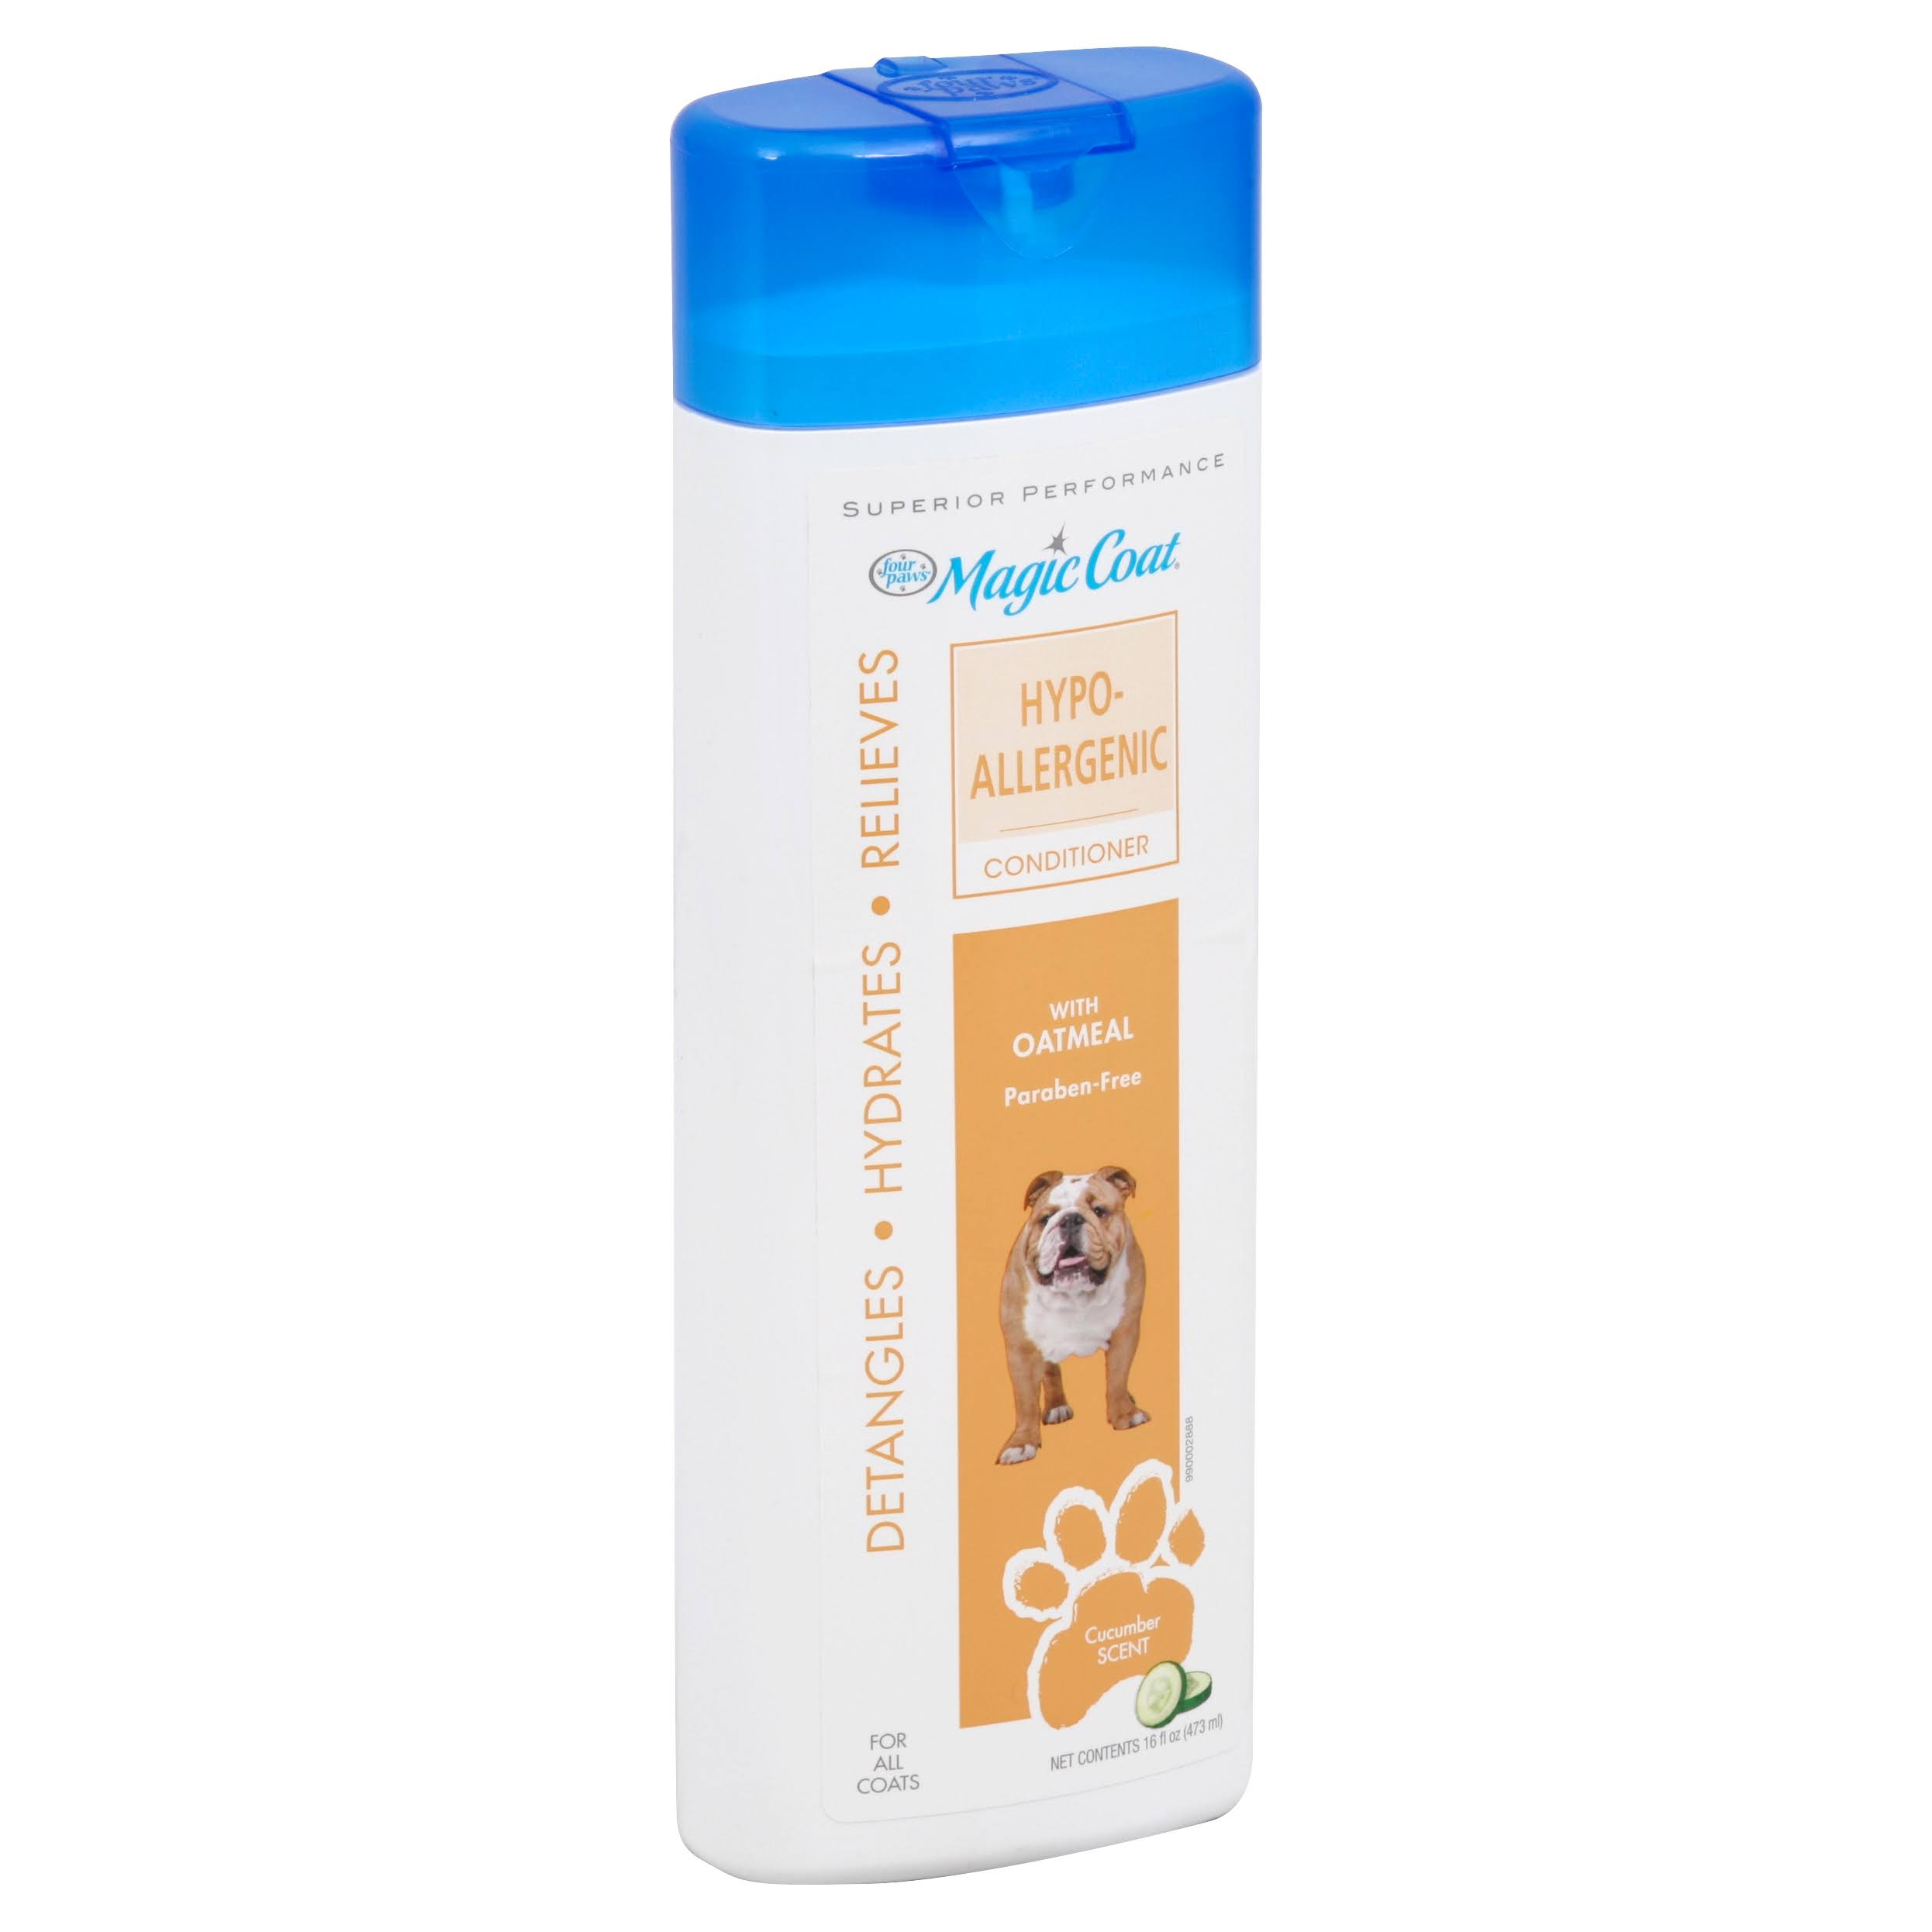 Four Paws Magic Coat Hypo Allergenic Dog Grooming Conditioner - 16oz